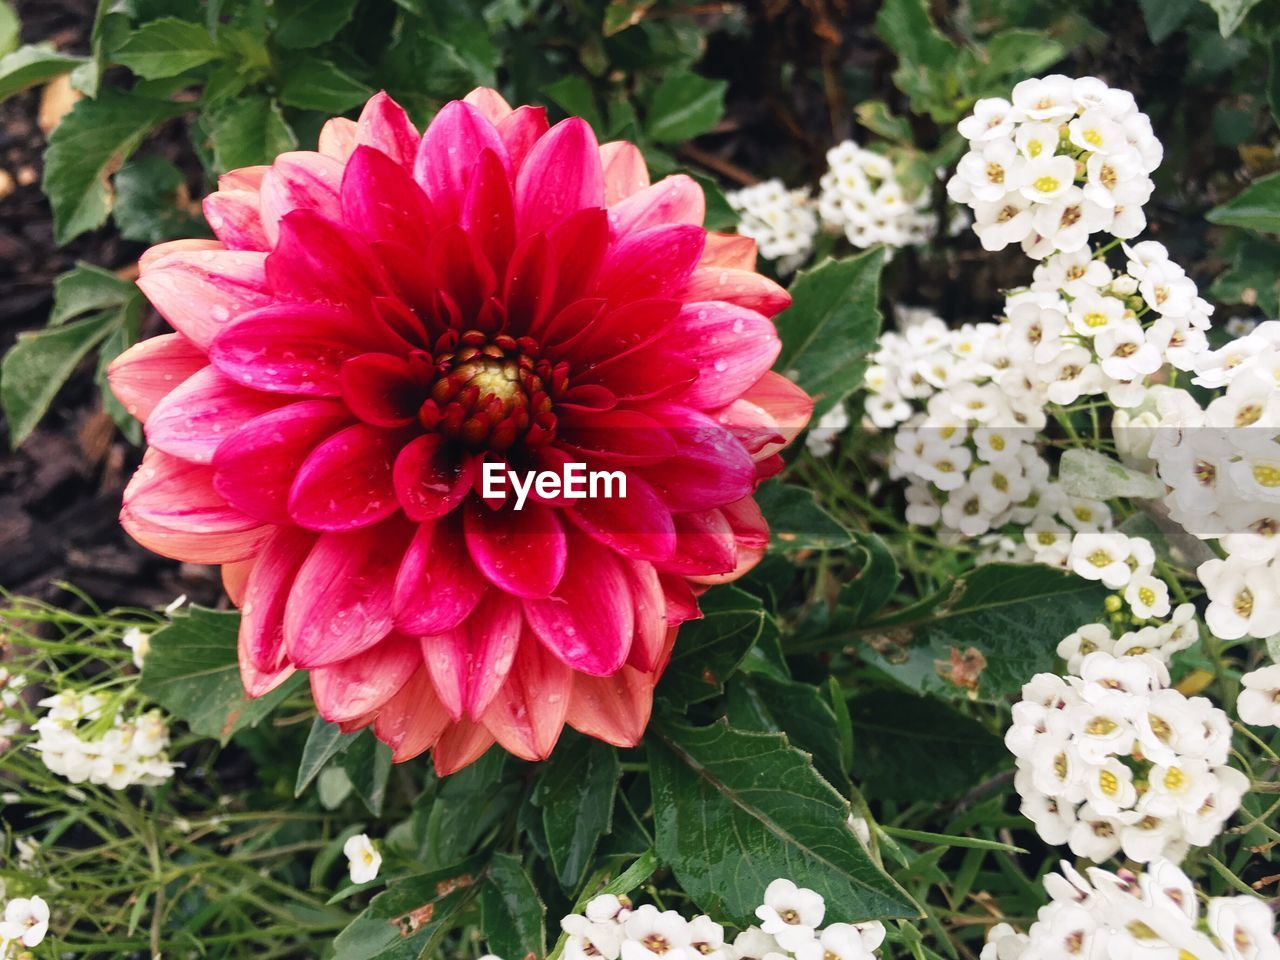 flower, beauty in nature, fragility, flower head, petal, growth, nature, freshness, blooming, plant, day, no people, outdoors, park - man made space, zinnia, close-up